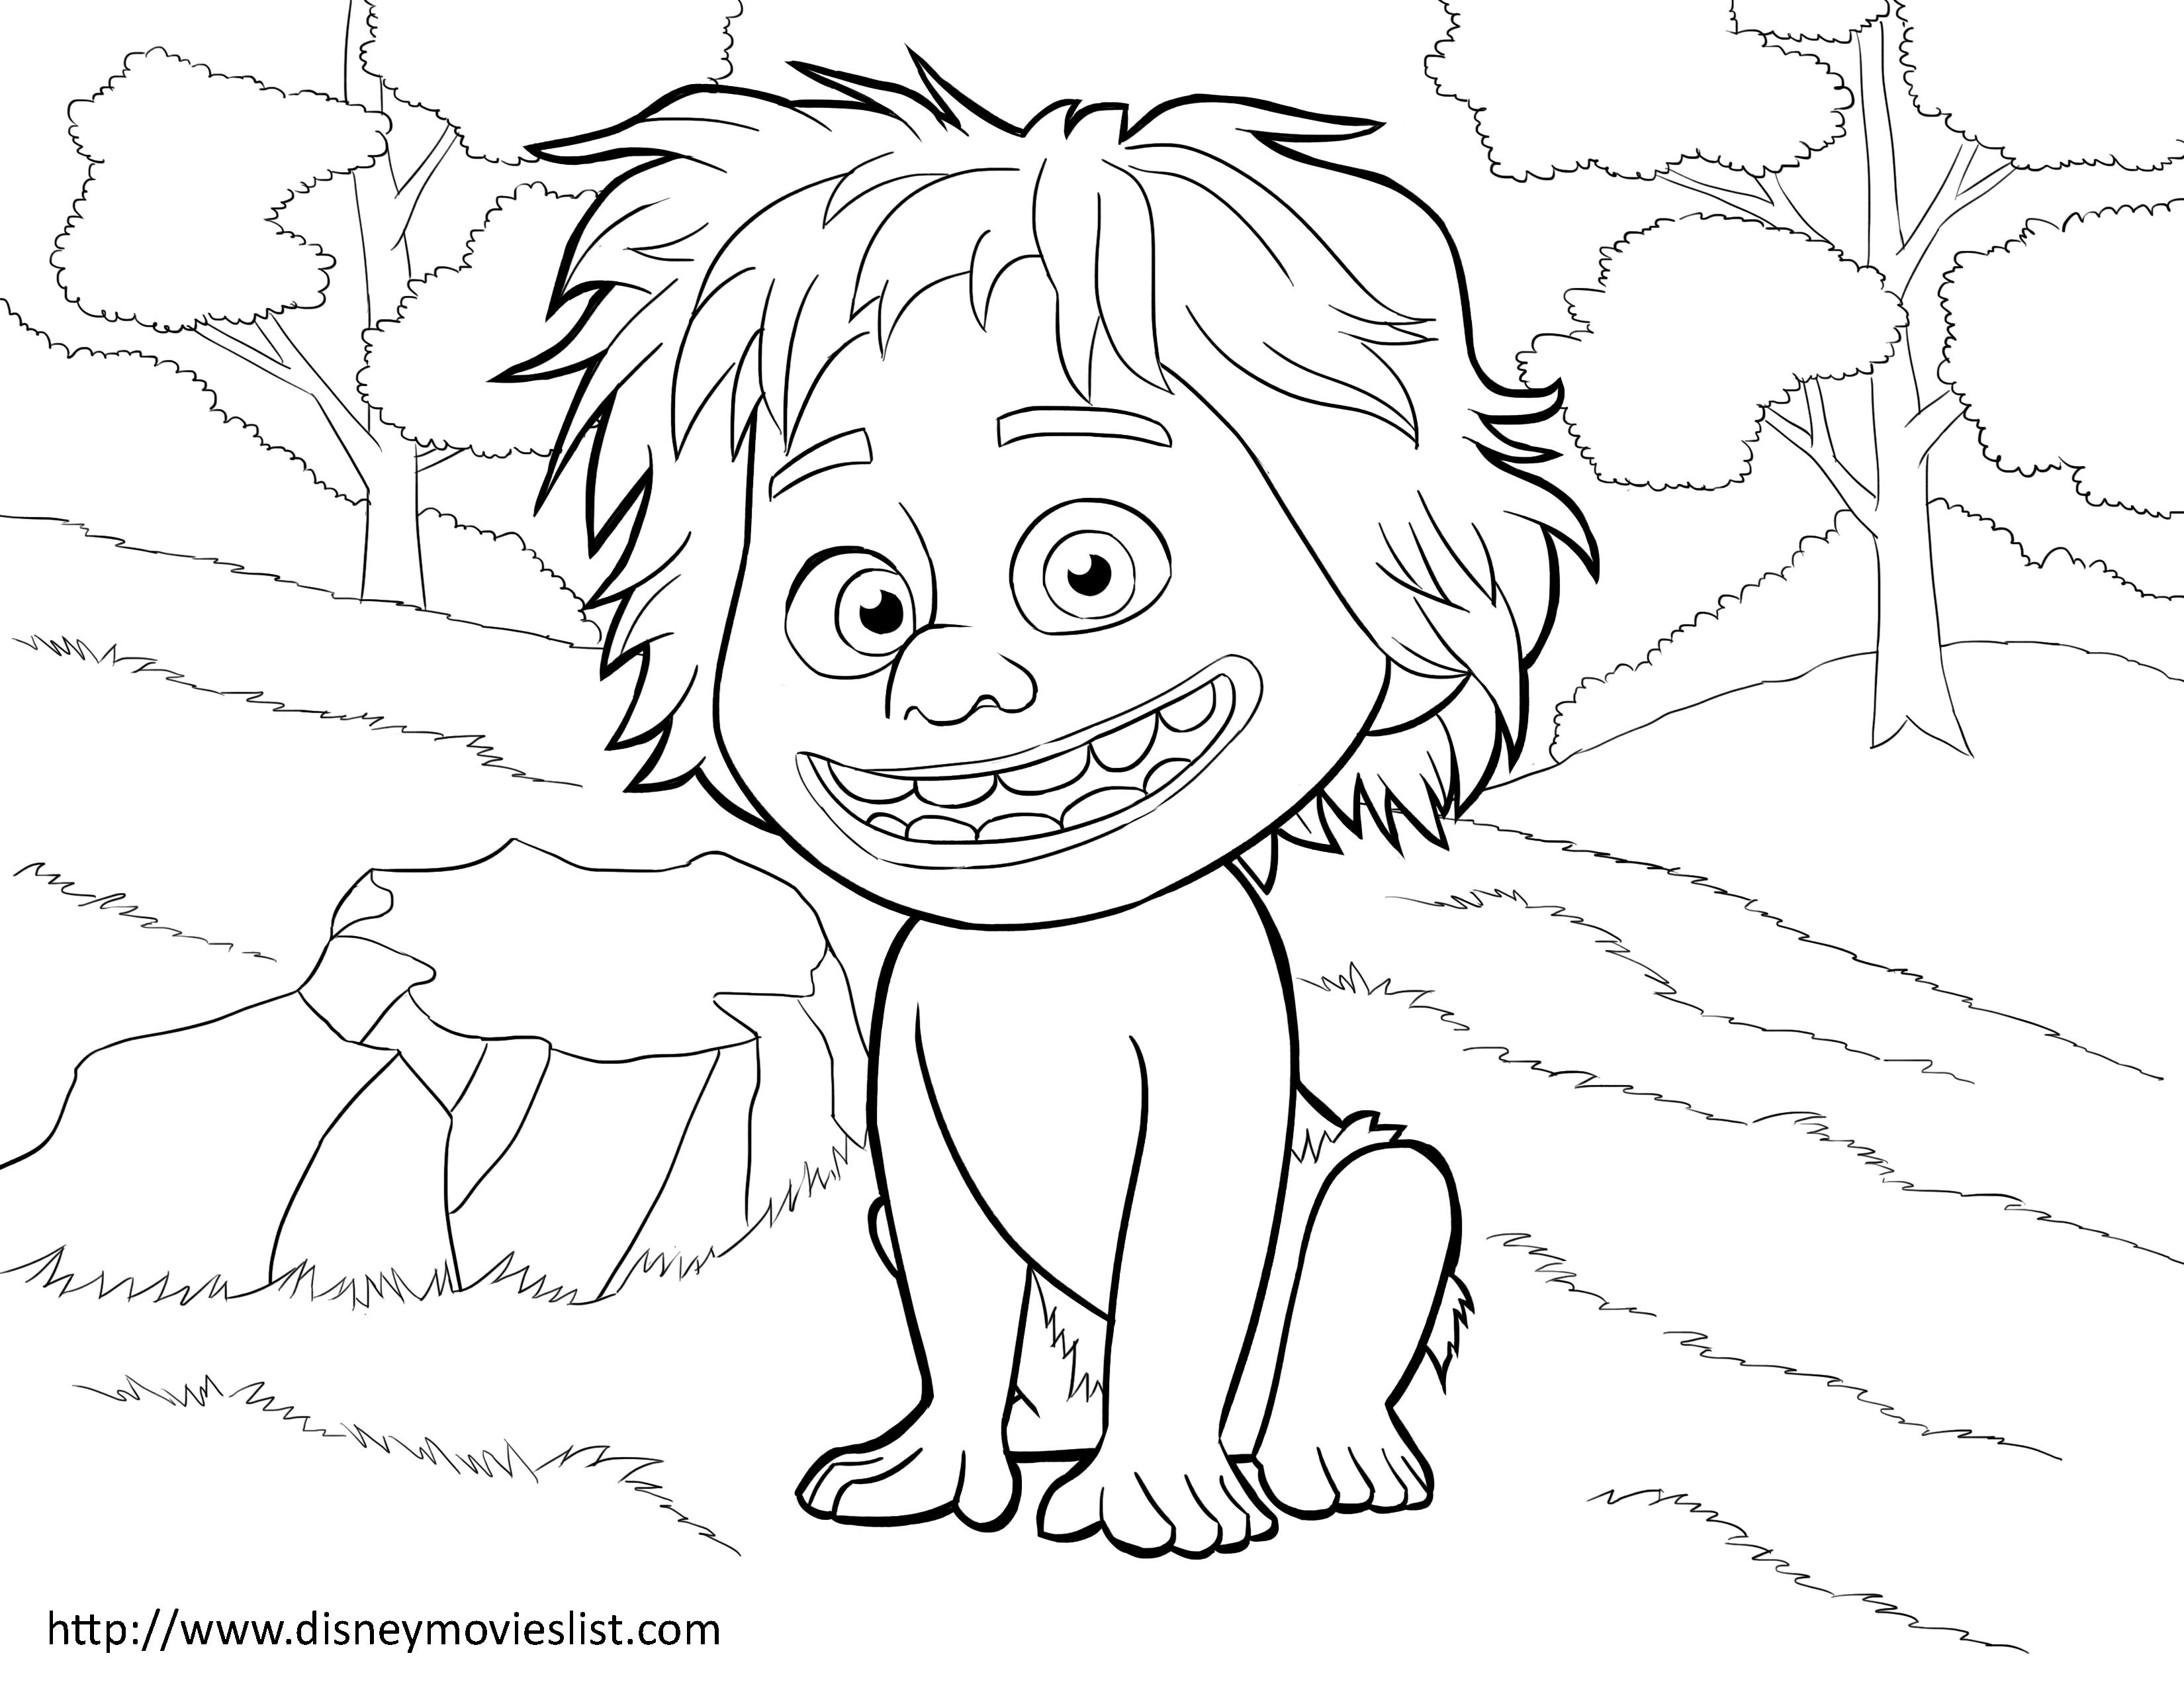 Disney\'s The Good Dinosaur Spot Coloring Page | color pages and more ...